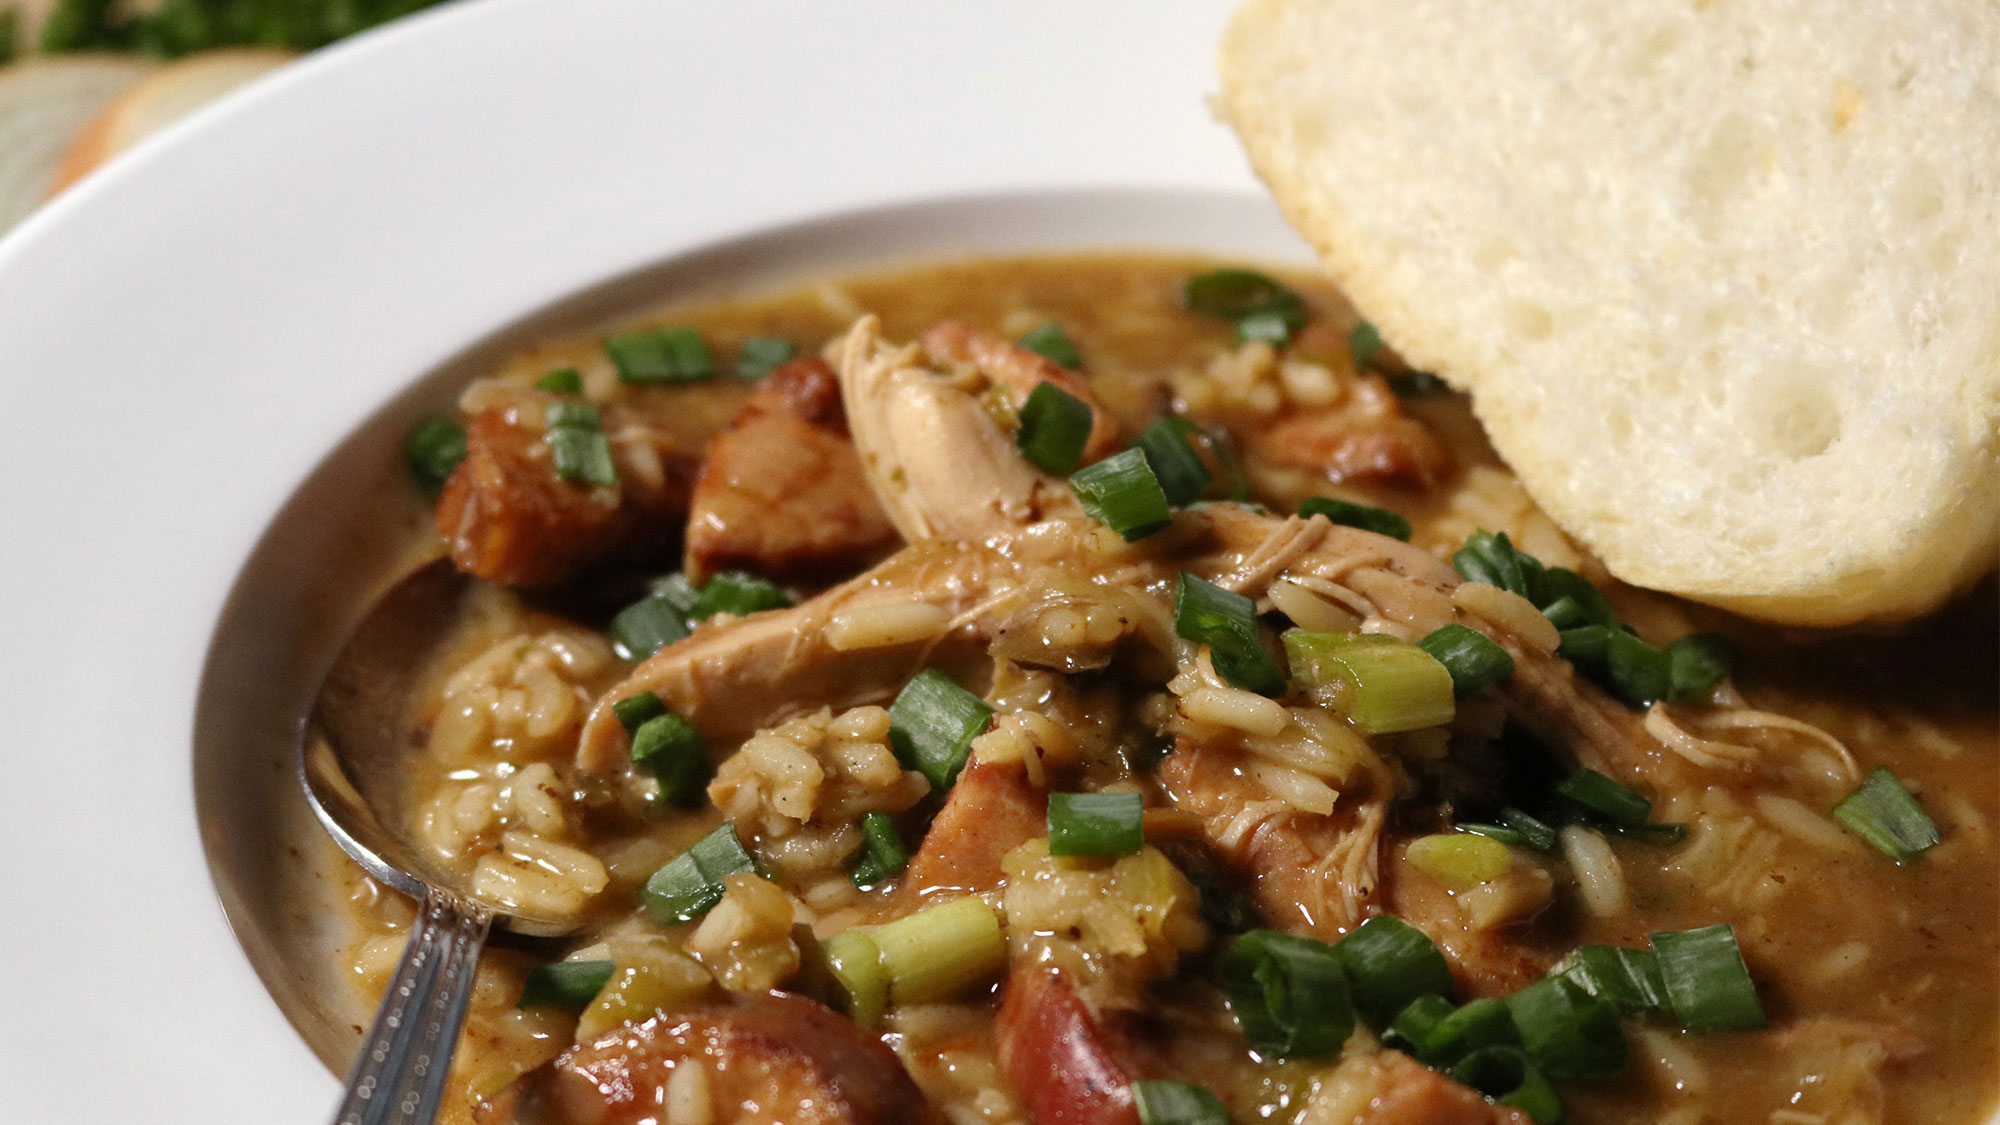 Zatarain's Holiday Turkey Gumbo